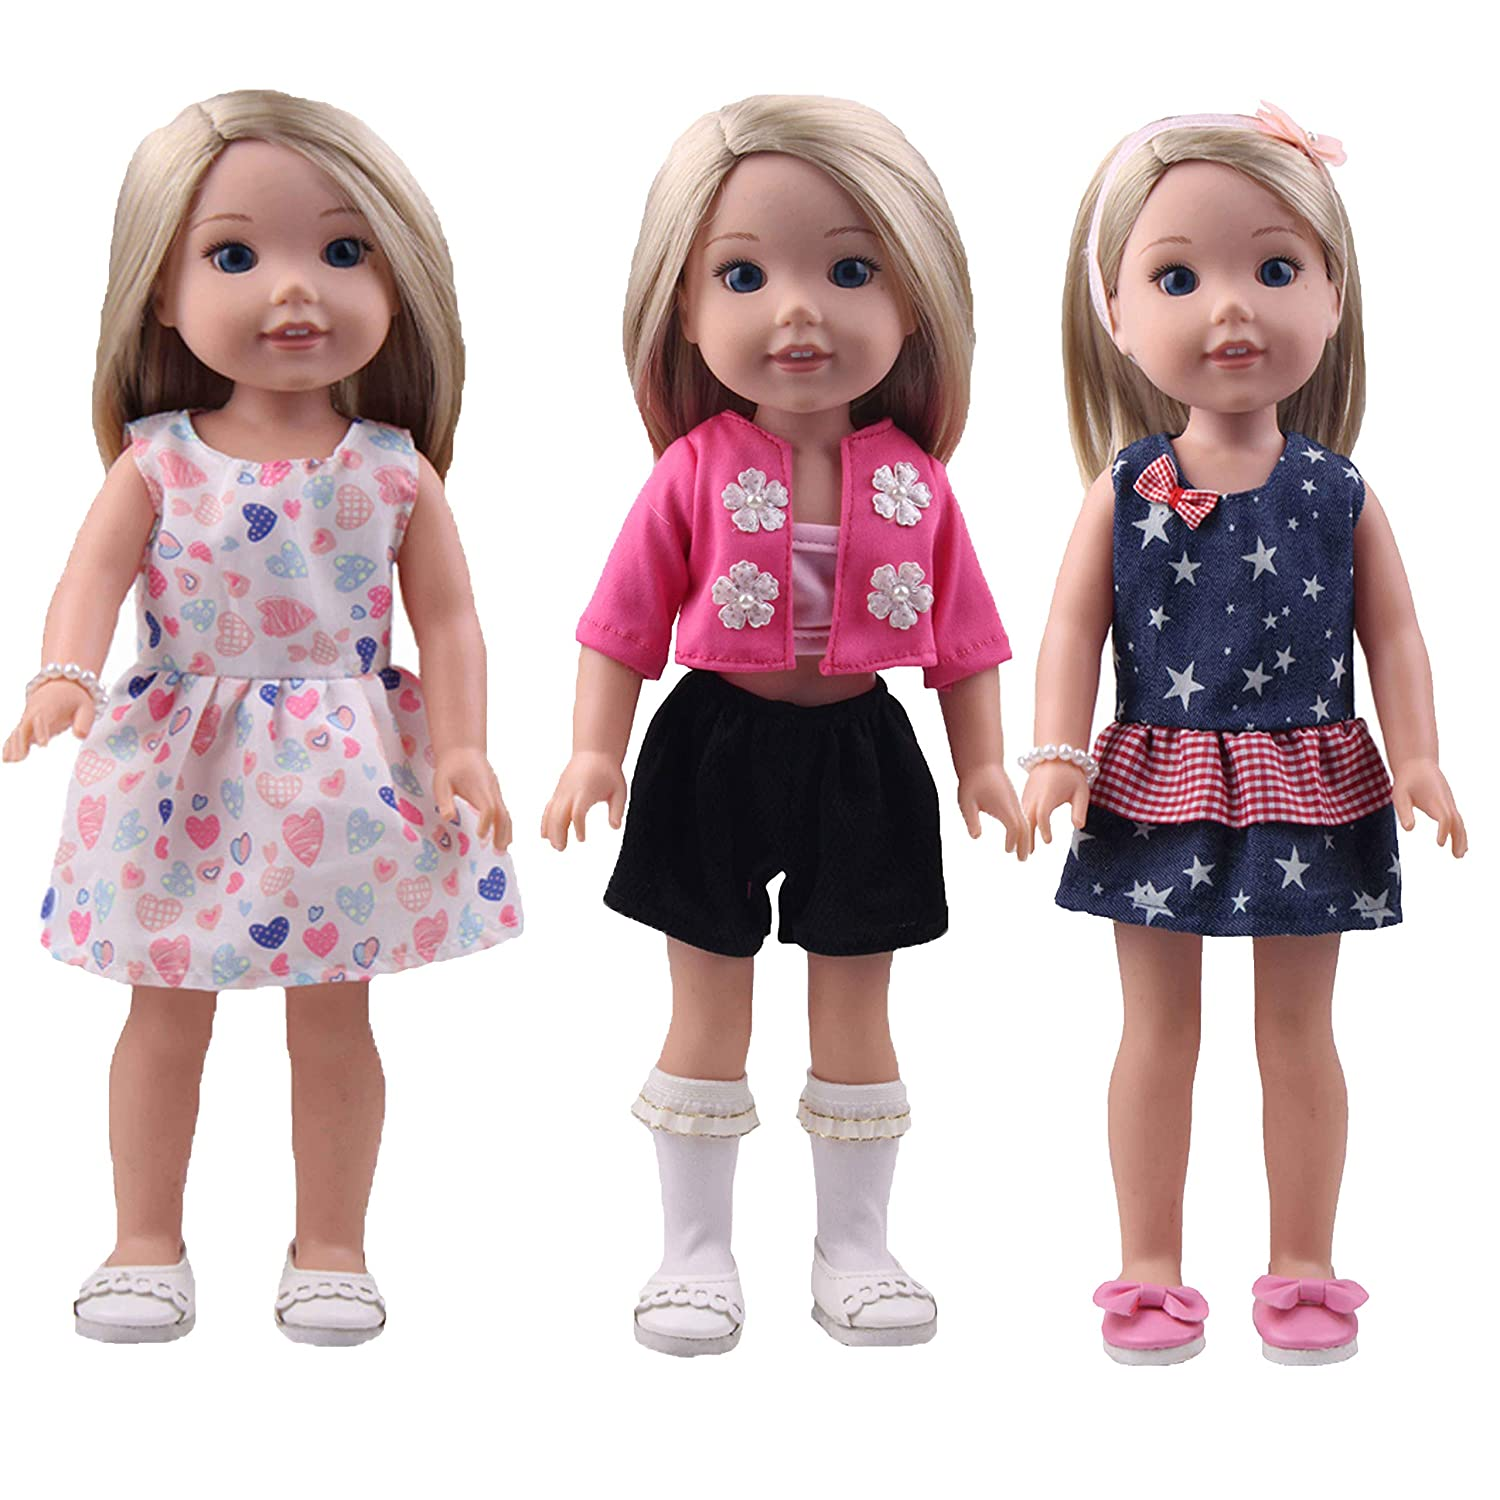 BBTOYS 14inch Outfit Doll Clothes - Including 3sets of Complete Doll Costume + 1 Pair of Hair Terry +1 Hair Band +1 Bracelet Accessories fit American Girl Wellie Wishers Doll